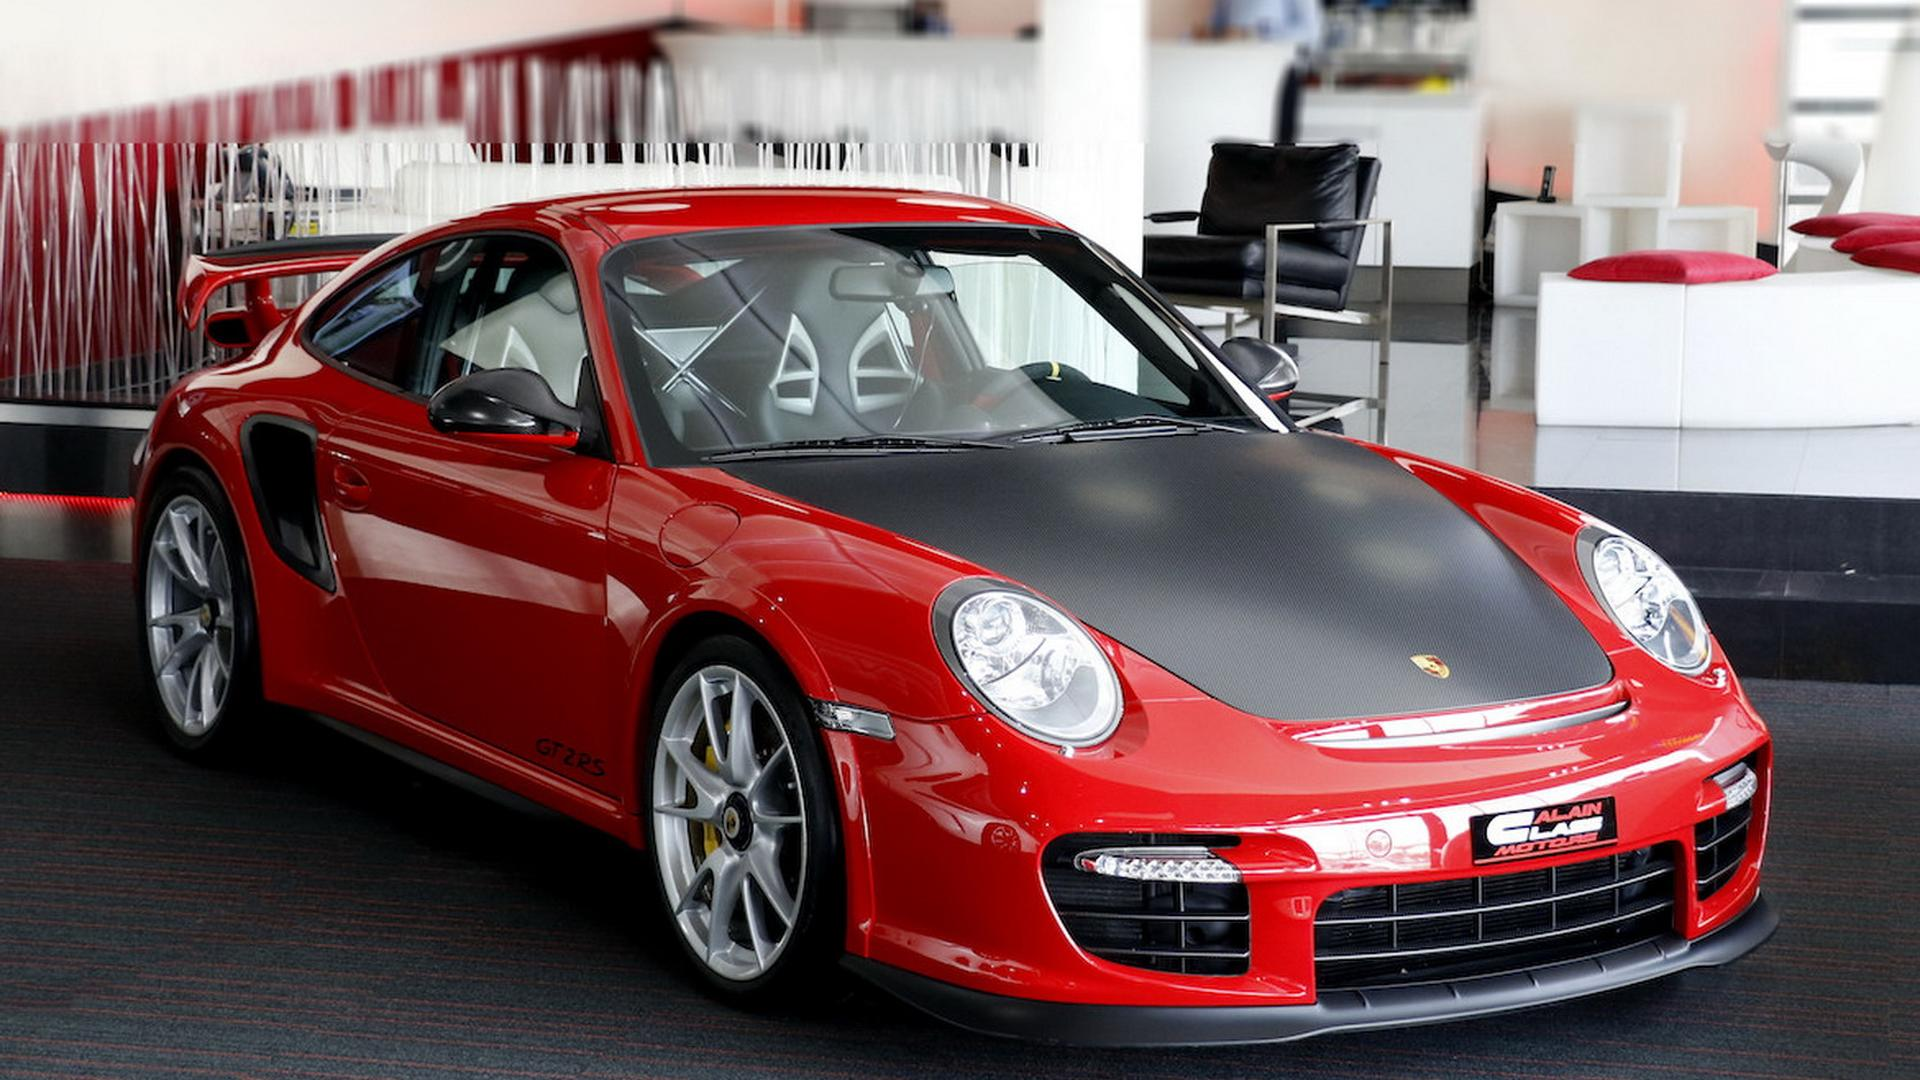 porsche 911 gt2 for sale usa pictures drivins. Black Bedroom Furniture Sets. Home Design Ideas